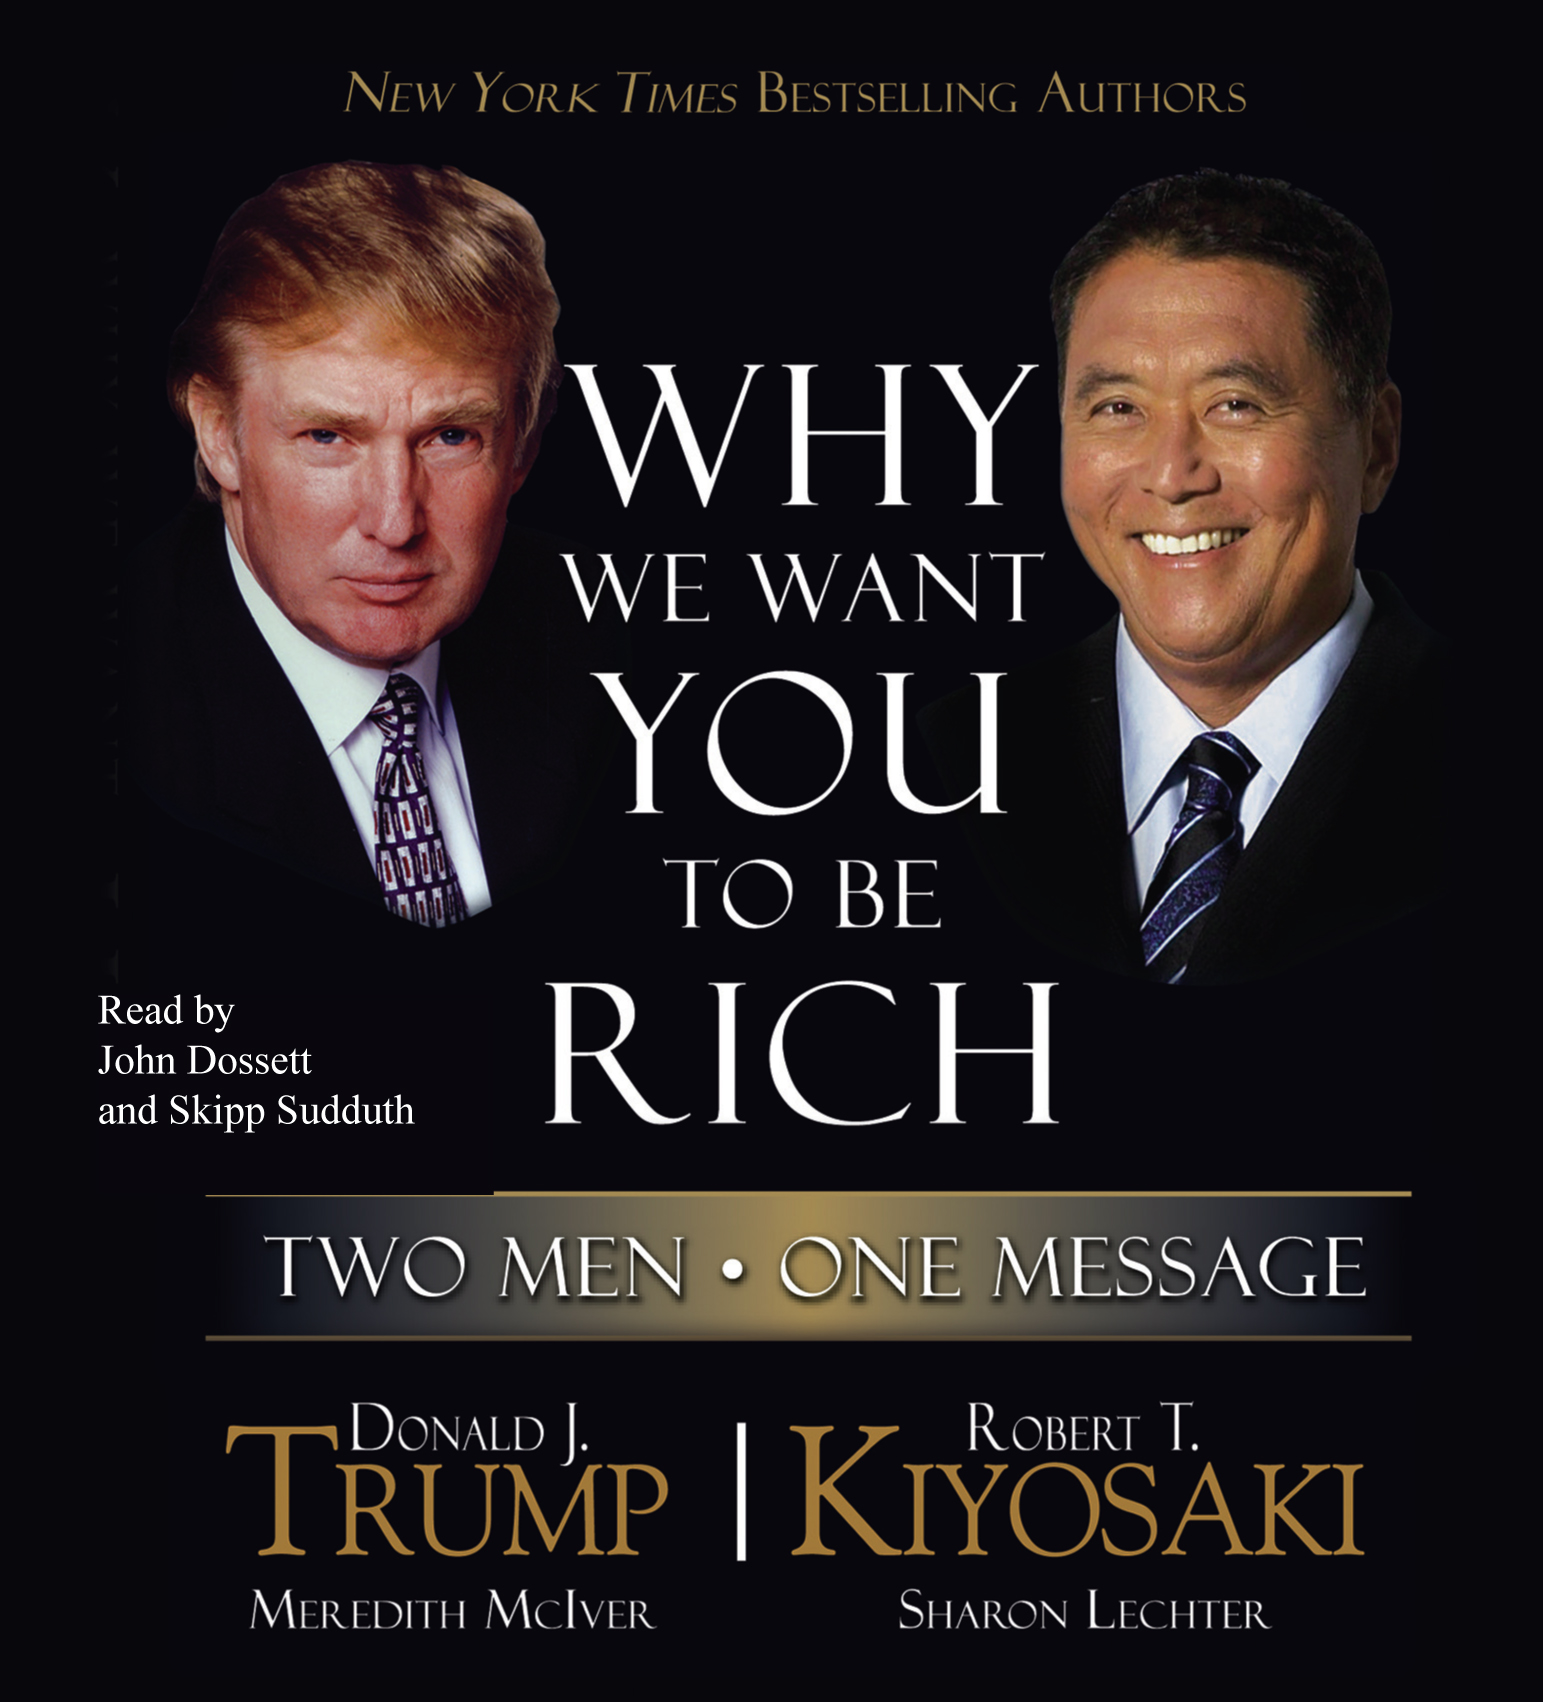 Why We Want You To Be Rich Audiobook By Donald J. Trump